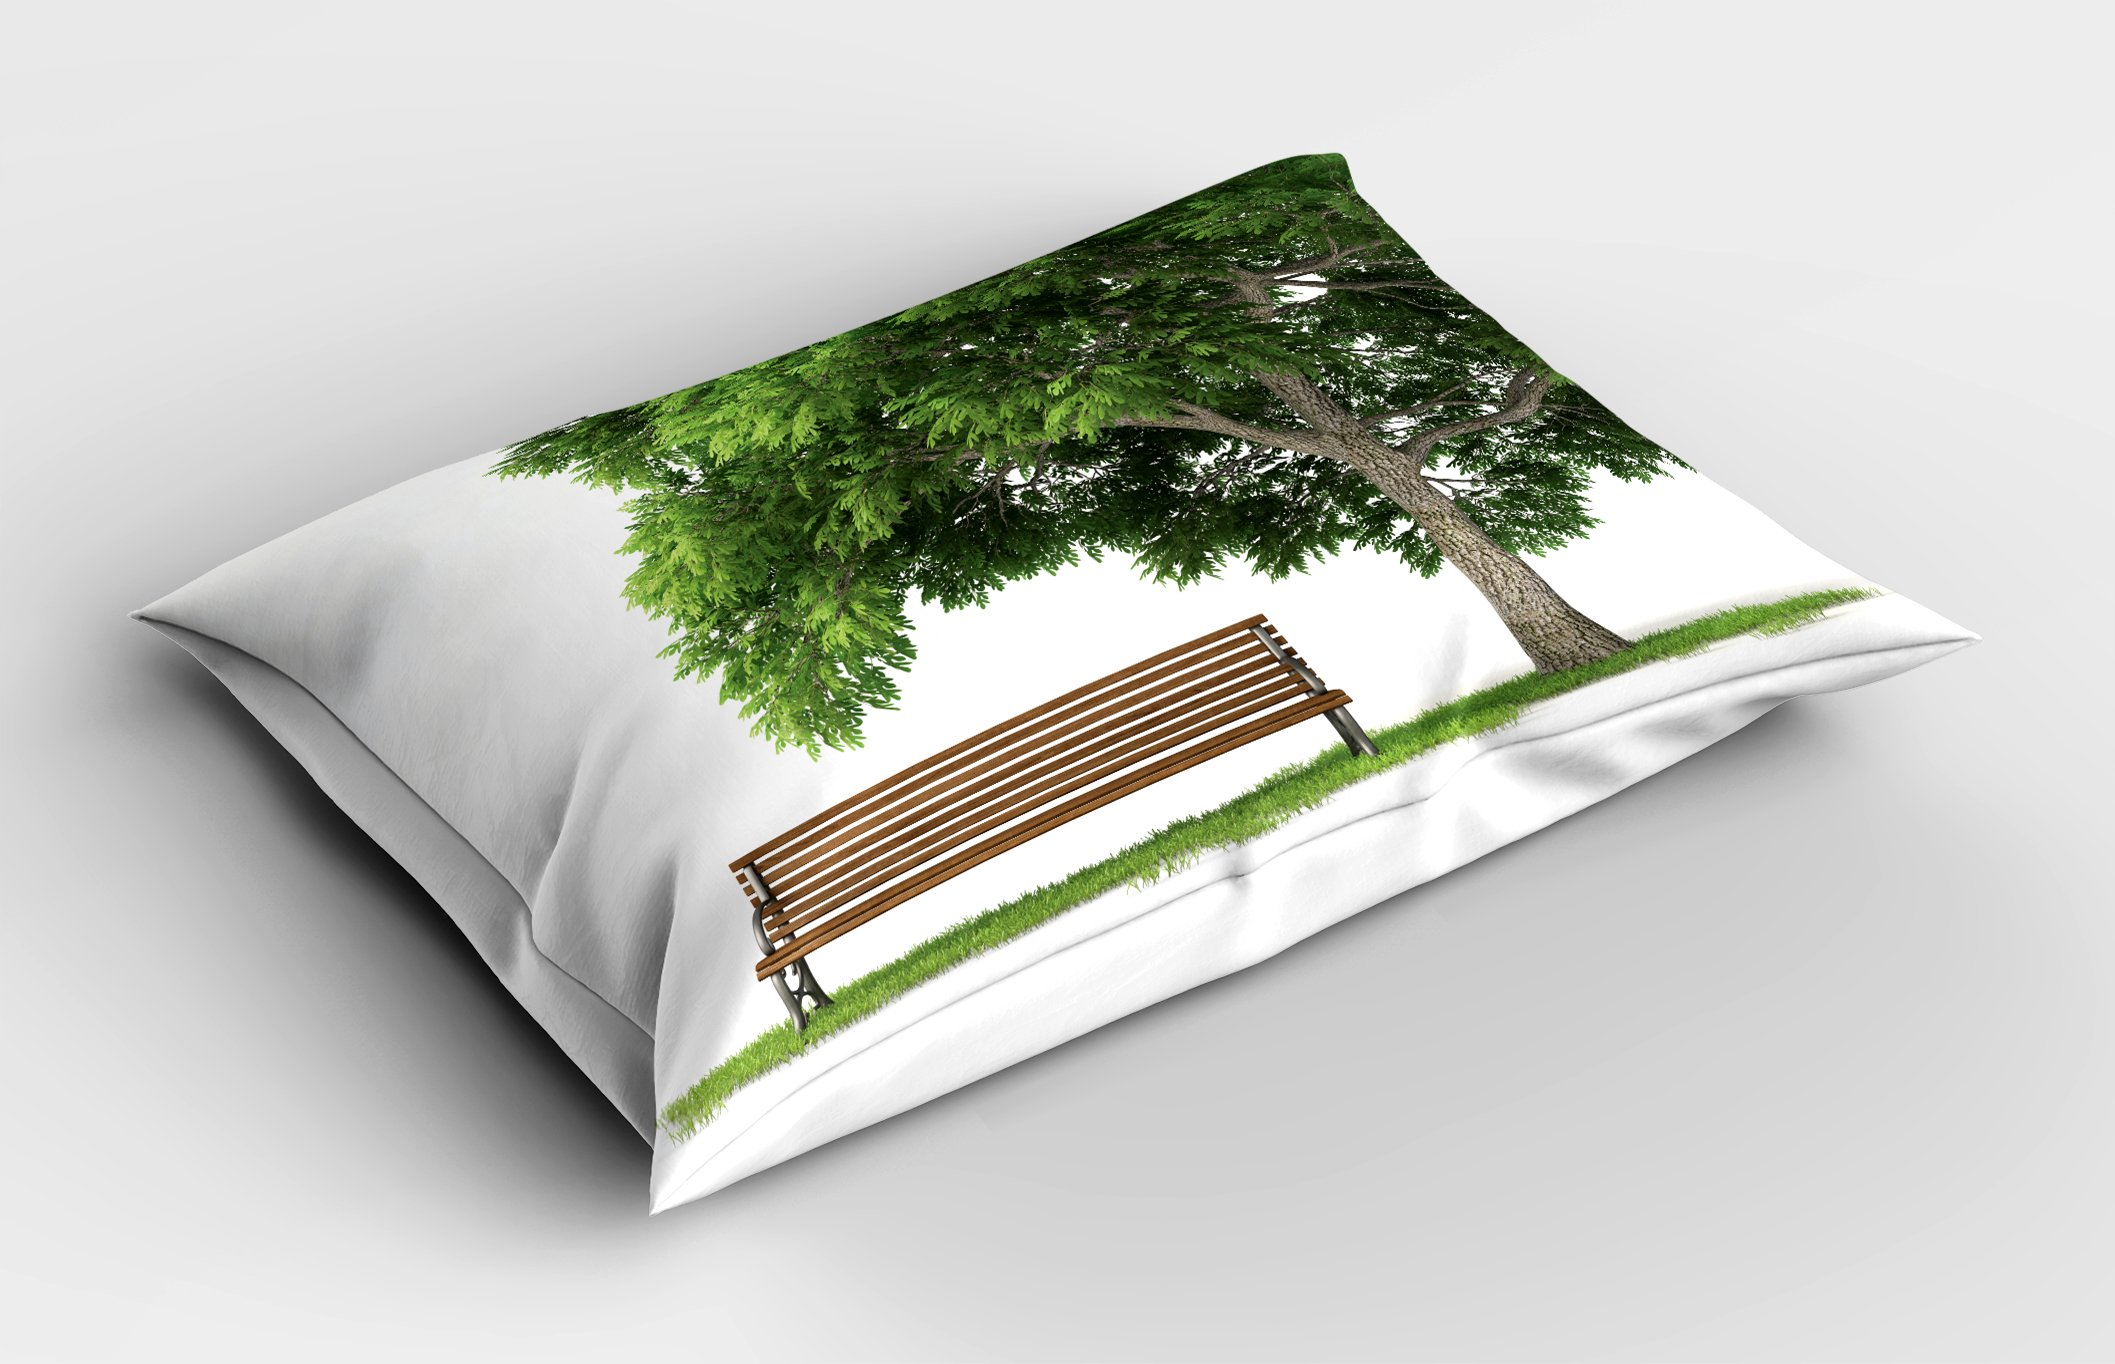 Lunarable Tree Pillow Sham, Beach Under Oak Tree Outdoor Objects Habitat Grass Foliage Wood Environment Concept, Decorative Standard Queen Size Printed Pillowcase, 30 X 20 inches, Green Brown by Lunarable (Image #2)